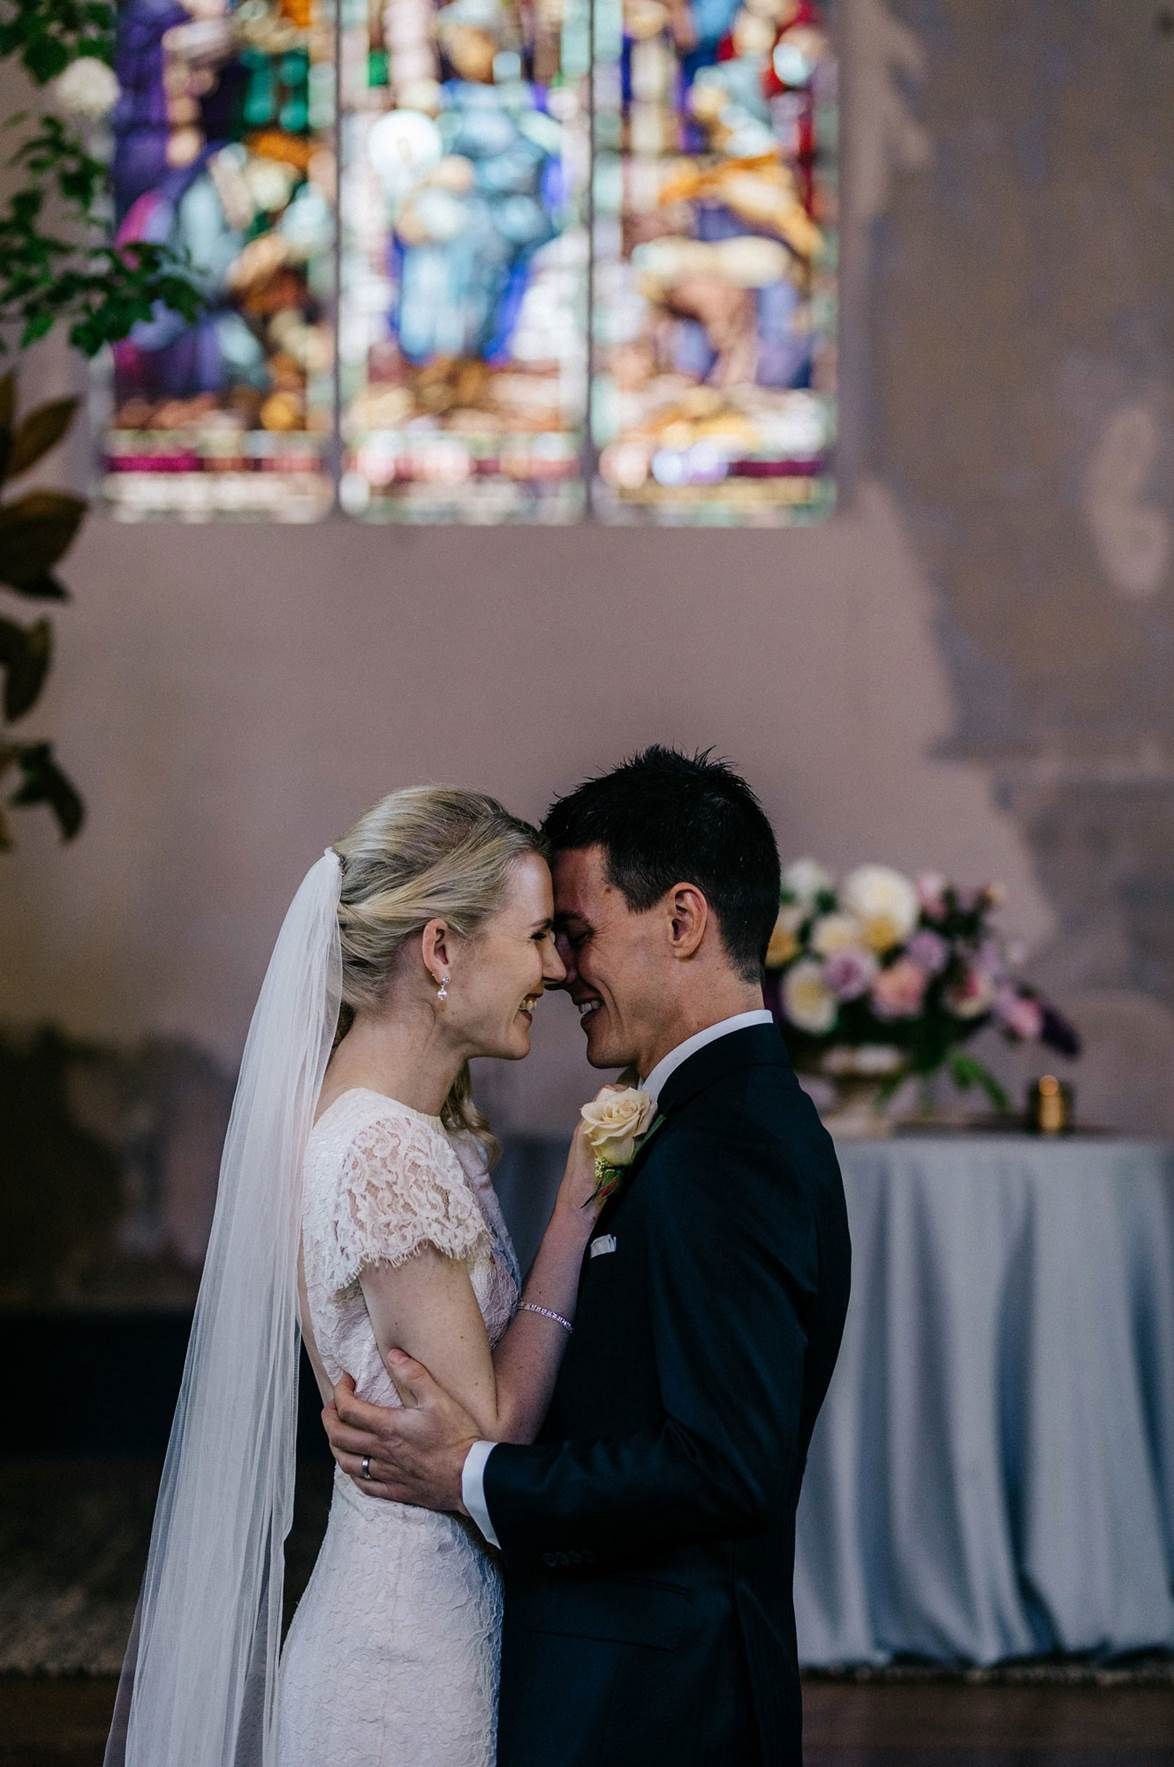 Country wedding a historic church filled with lush flora